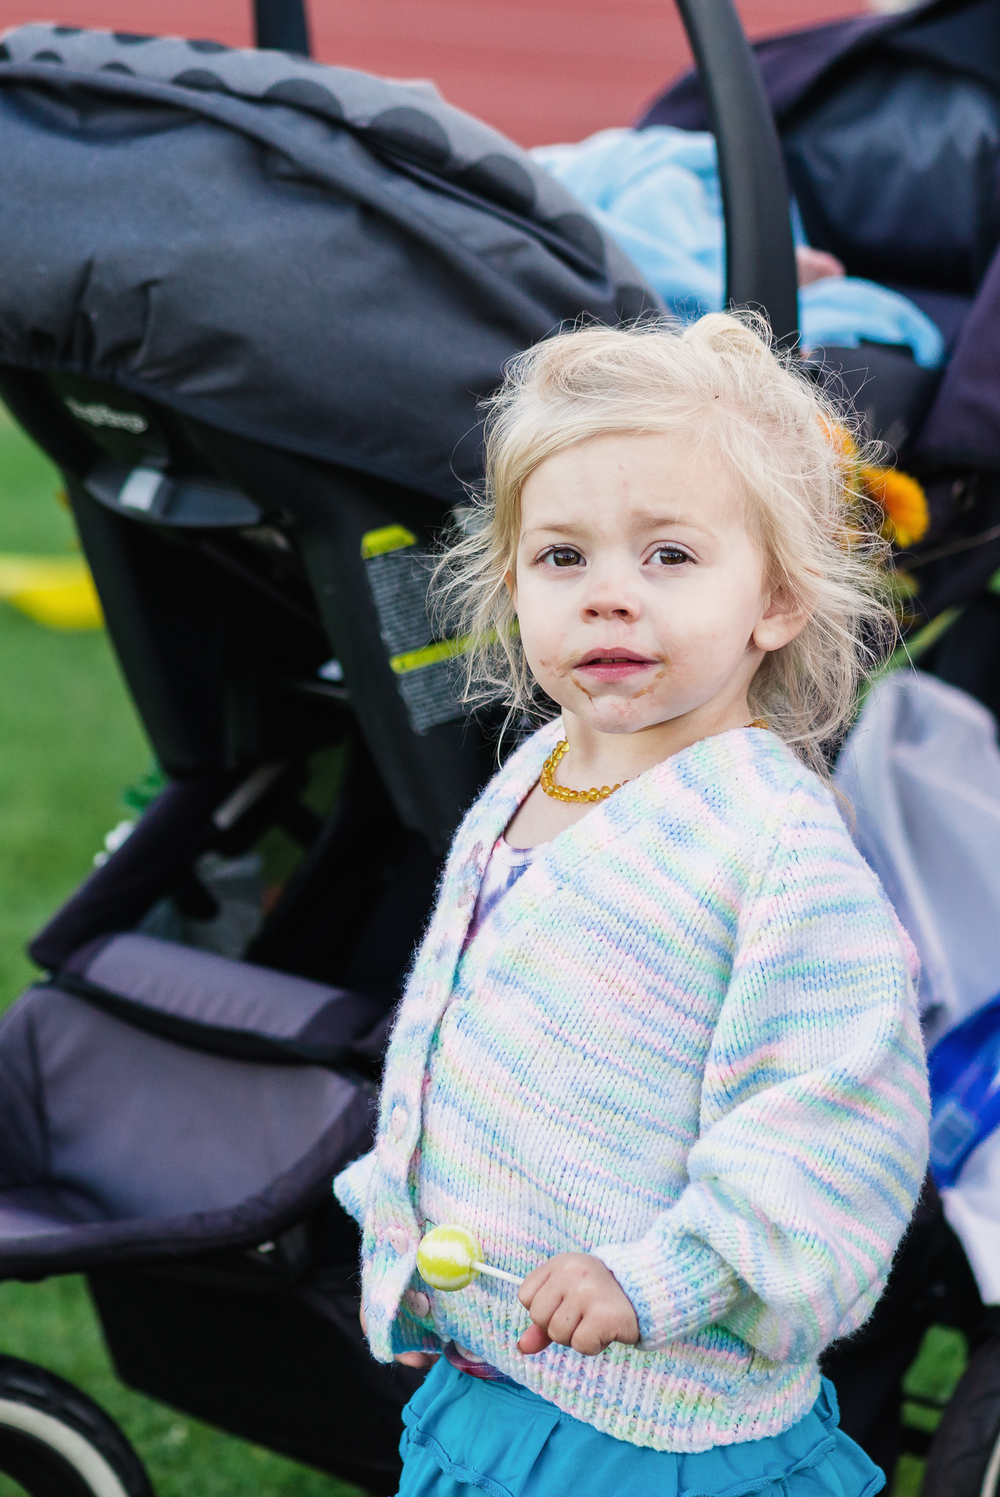 Lily_and_Lane_Relay_For_Life_Victoria_2015 (239).jpg